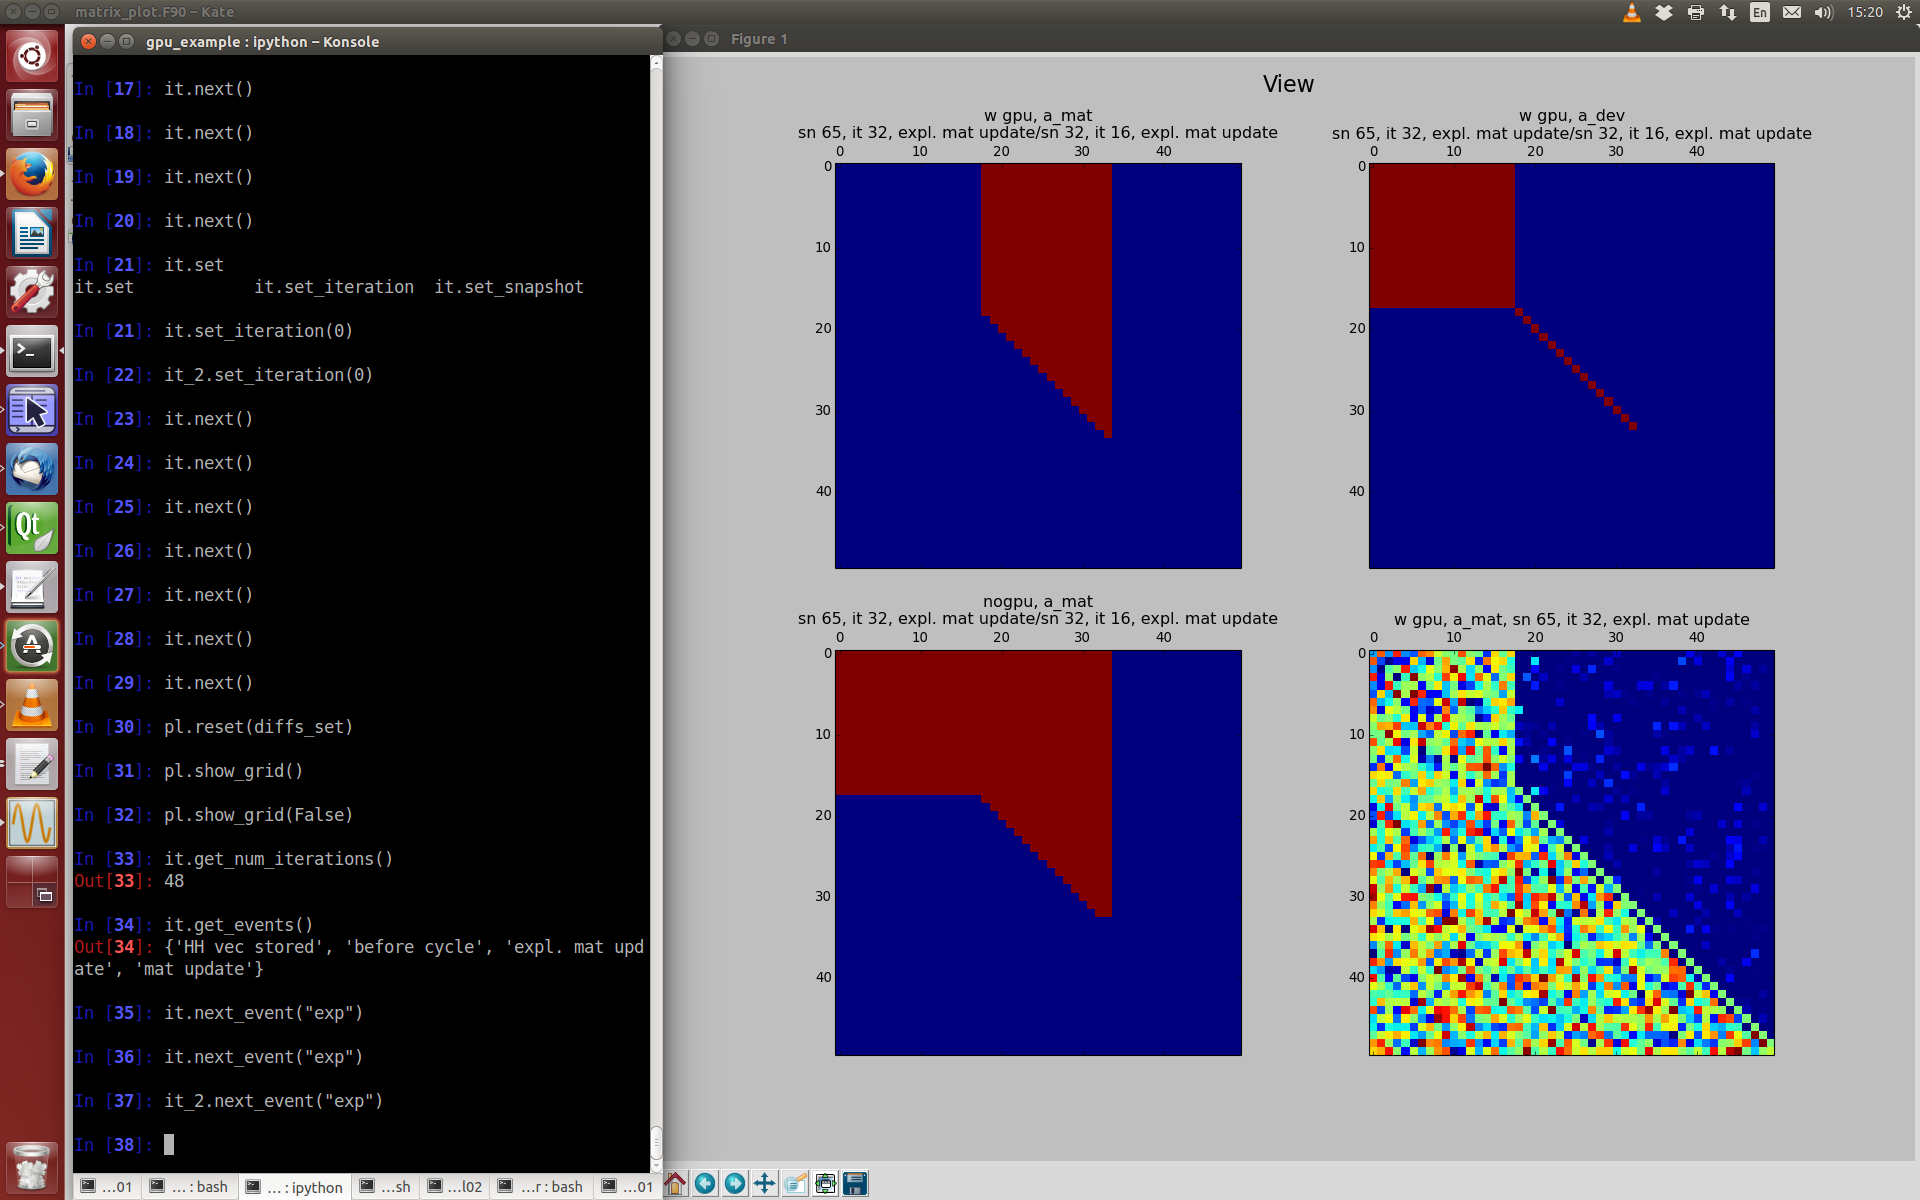 utils/matrix_plotter/gpu_example/screenshot.png